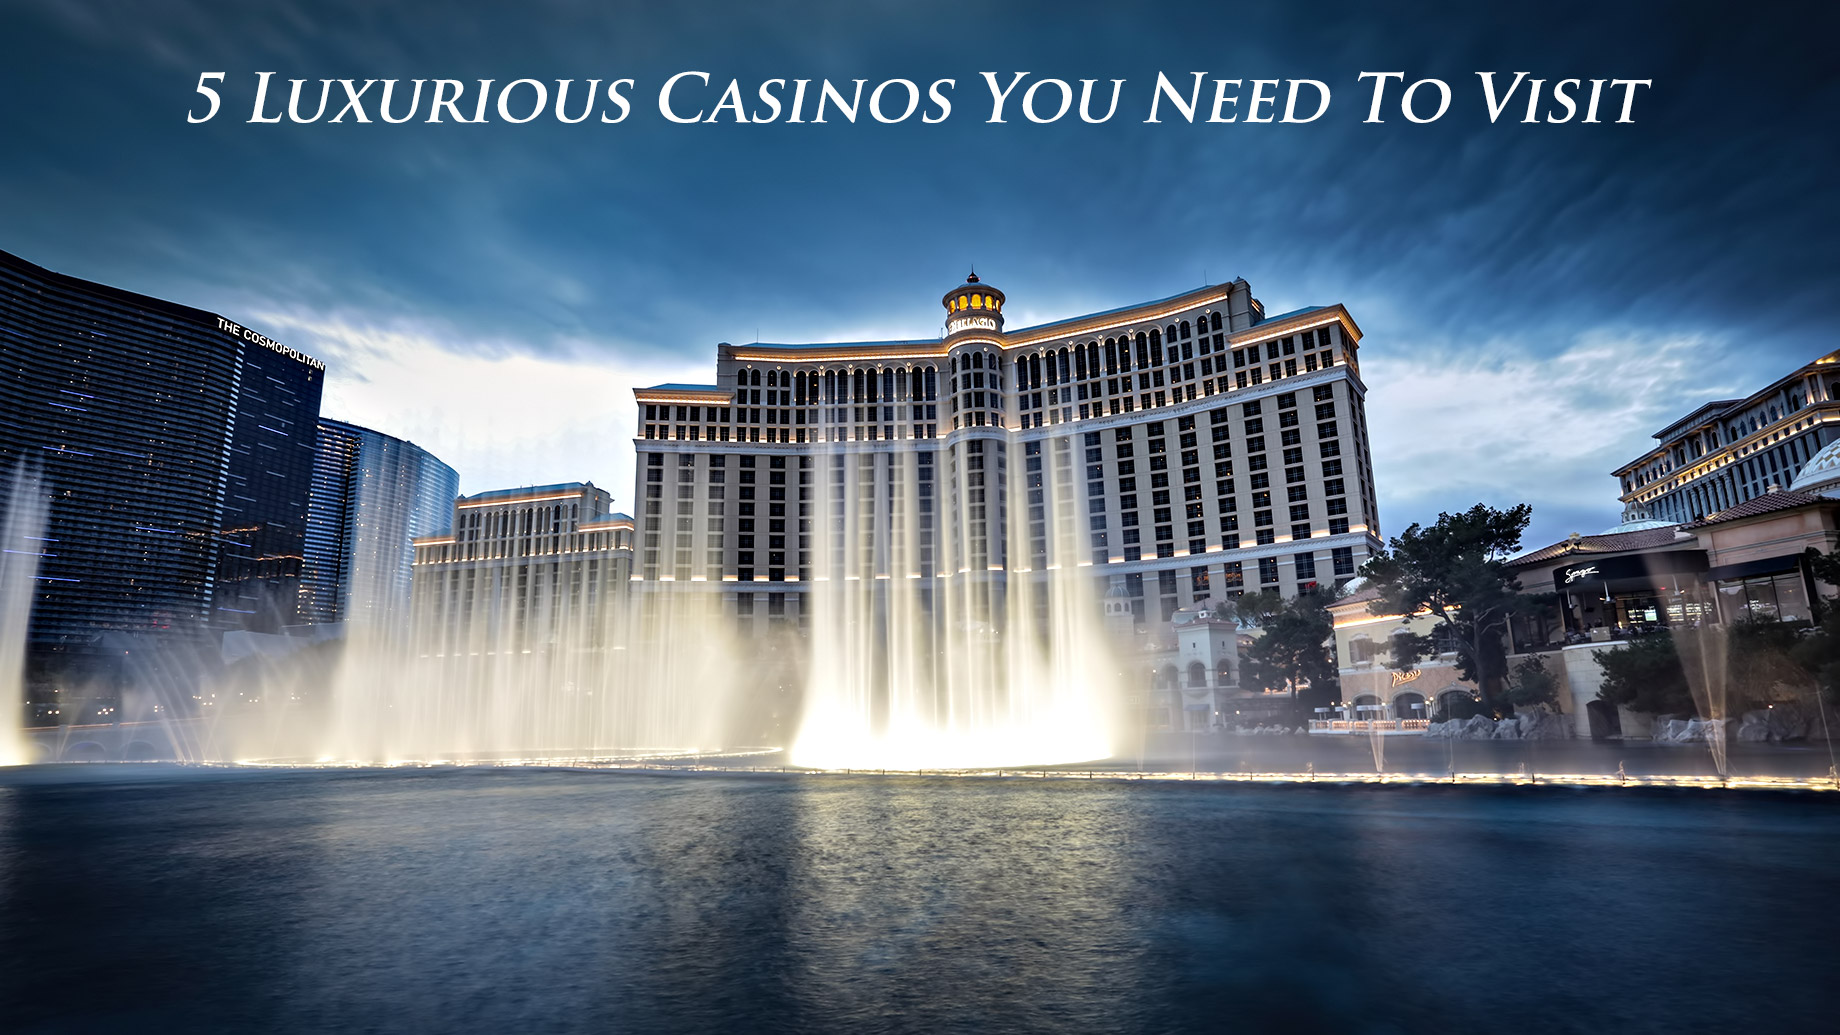 5 Luxurious Casinos You Need To Visit